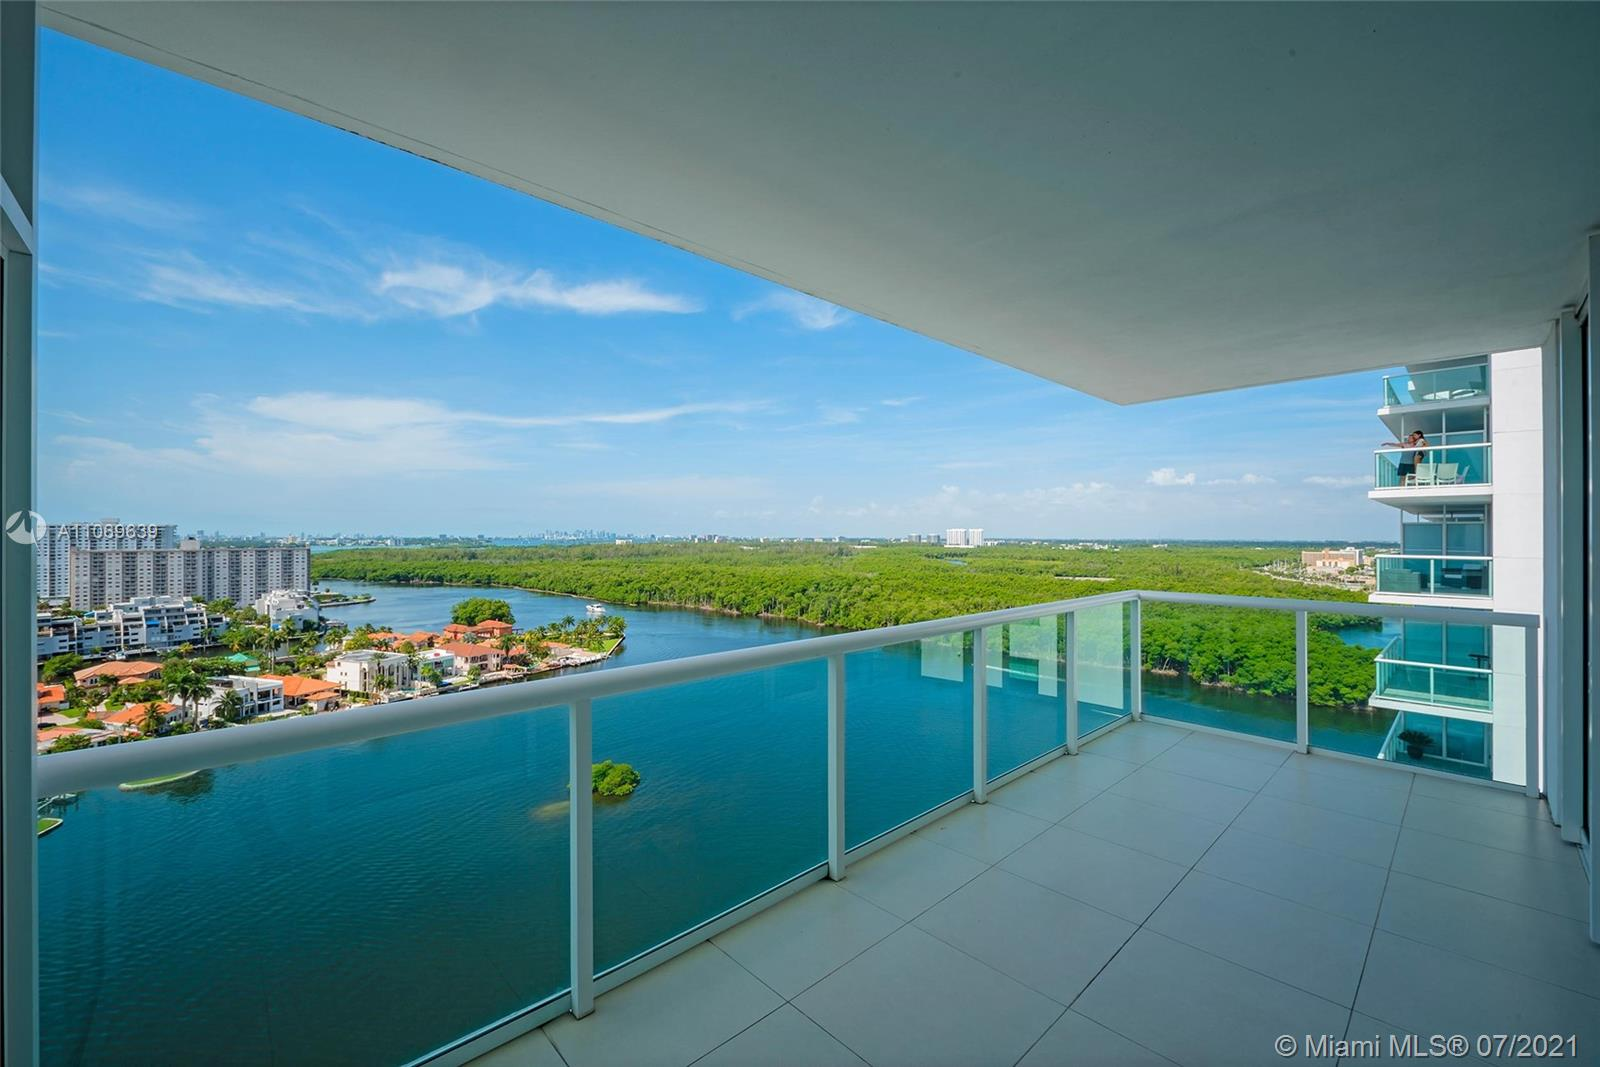 Perfectly located at just steps from the beach, this building is a portrayal of luxury and moreover this unit at the 19th floor reflects the vibrant and modern vibes of Sunny Isles with unbeatable views of the Intracoastal Bay and the Ocean. It has panoramic views all over the apartment with some floor to ceiling windows that offer a unique expecience. It has modern large format-white stone floors, open concept kitchen with top of line appliances and custom cabinetry, custom closets and blinds. The building offers a broad spectrum of amenities which include Spa, Fitness Center, Tennis Court, Panoramic Pool, Entertainment Room, and a Private Marina. Ready to move in!